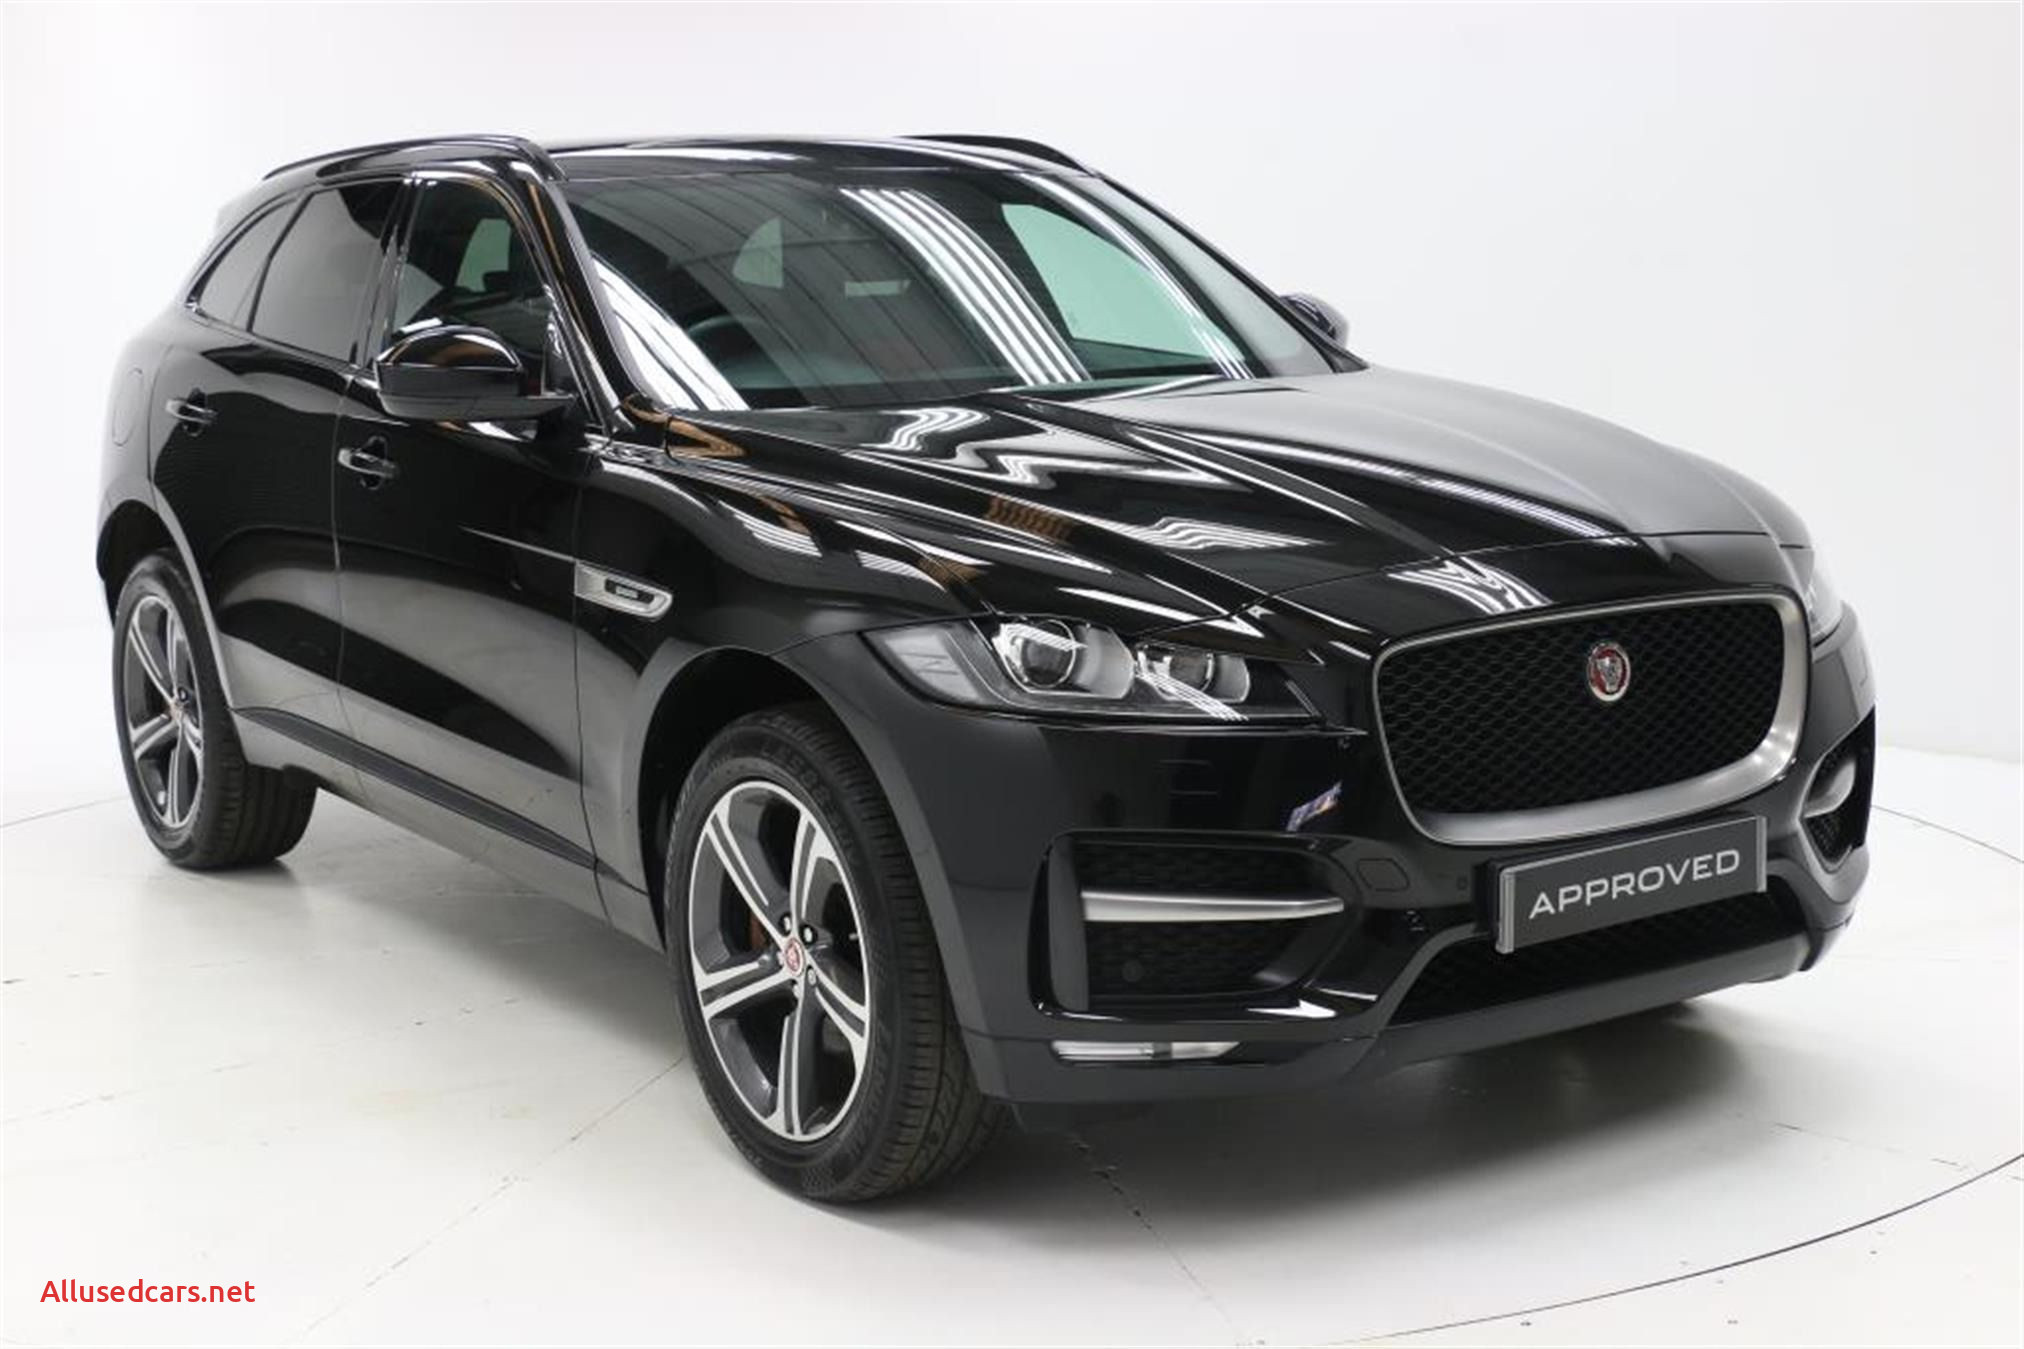 Used Cars for Sale 800 New Used F Pace Jaguar 2 0d R Sport 5dr Auto Awd 2018 In 2020